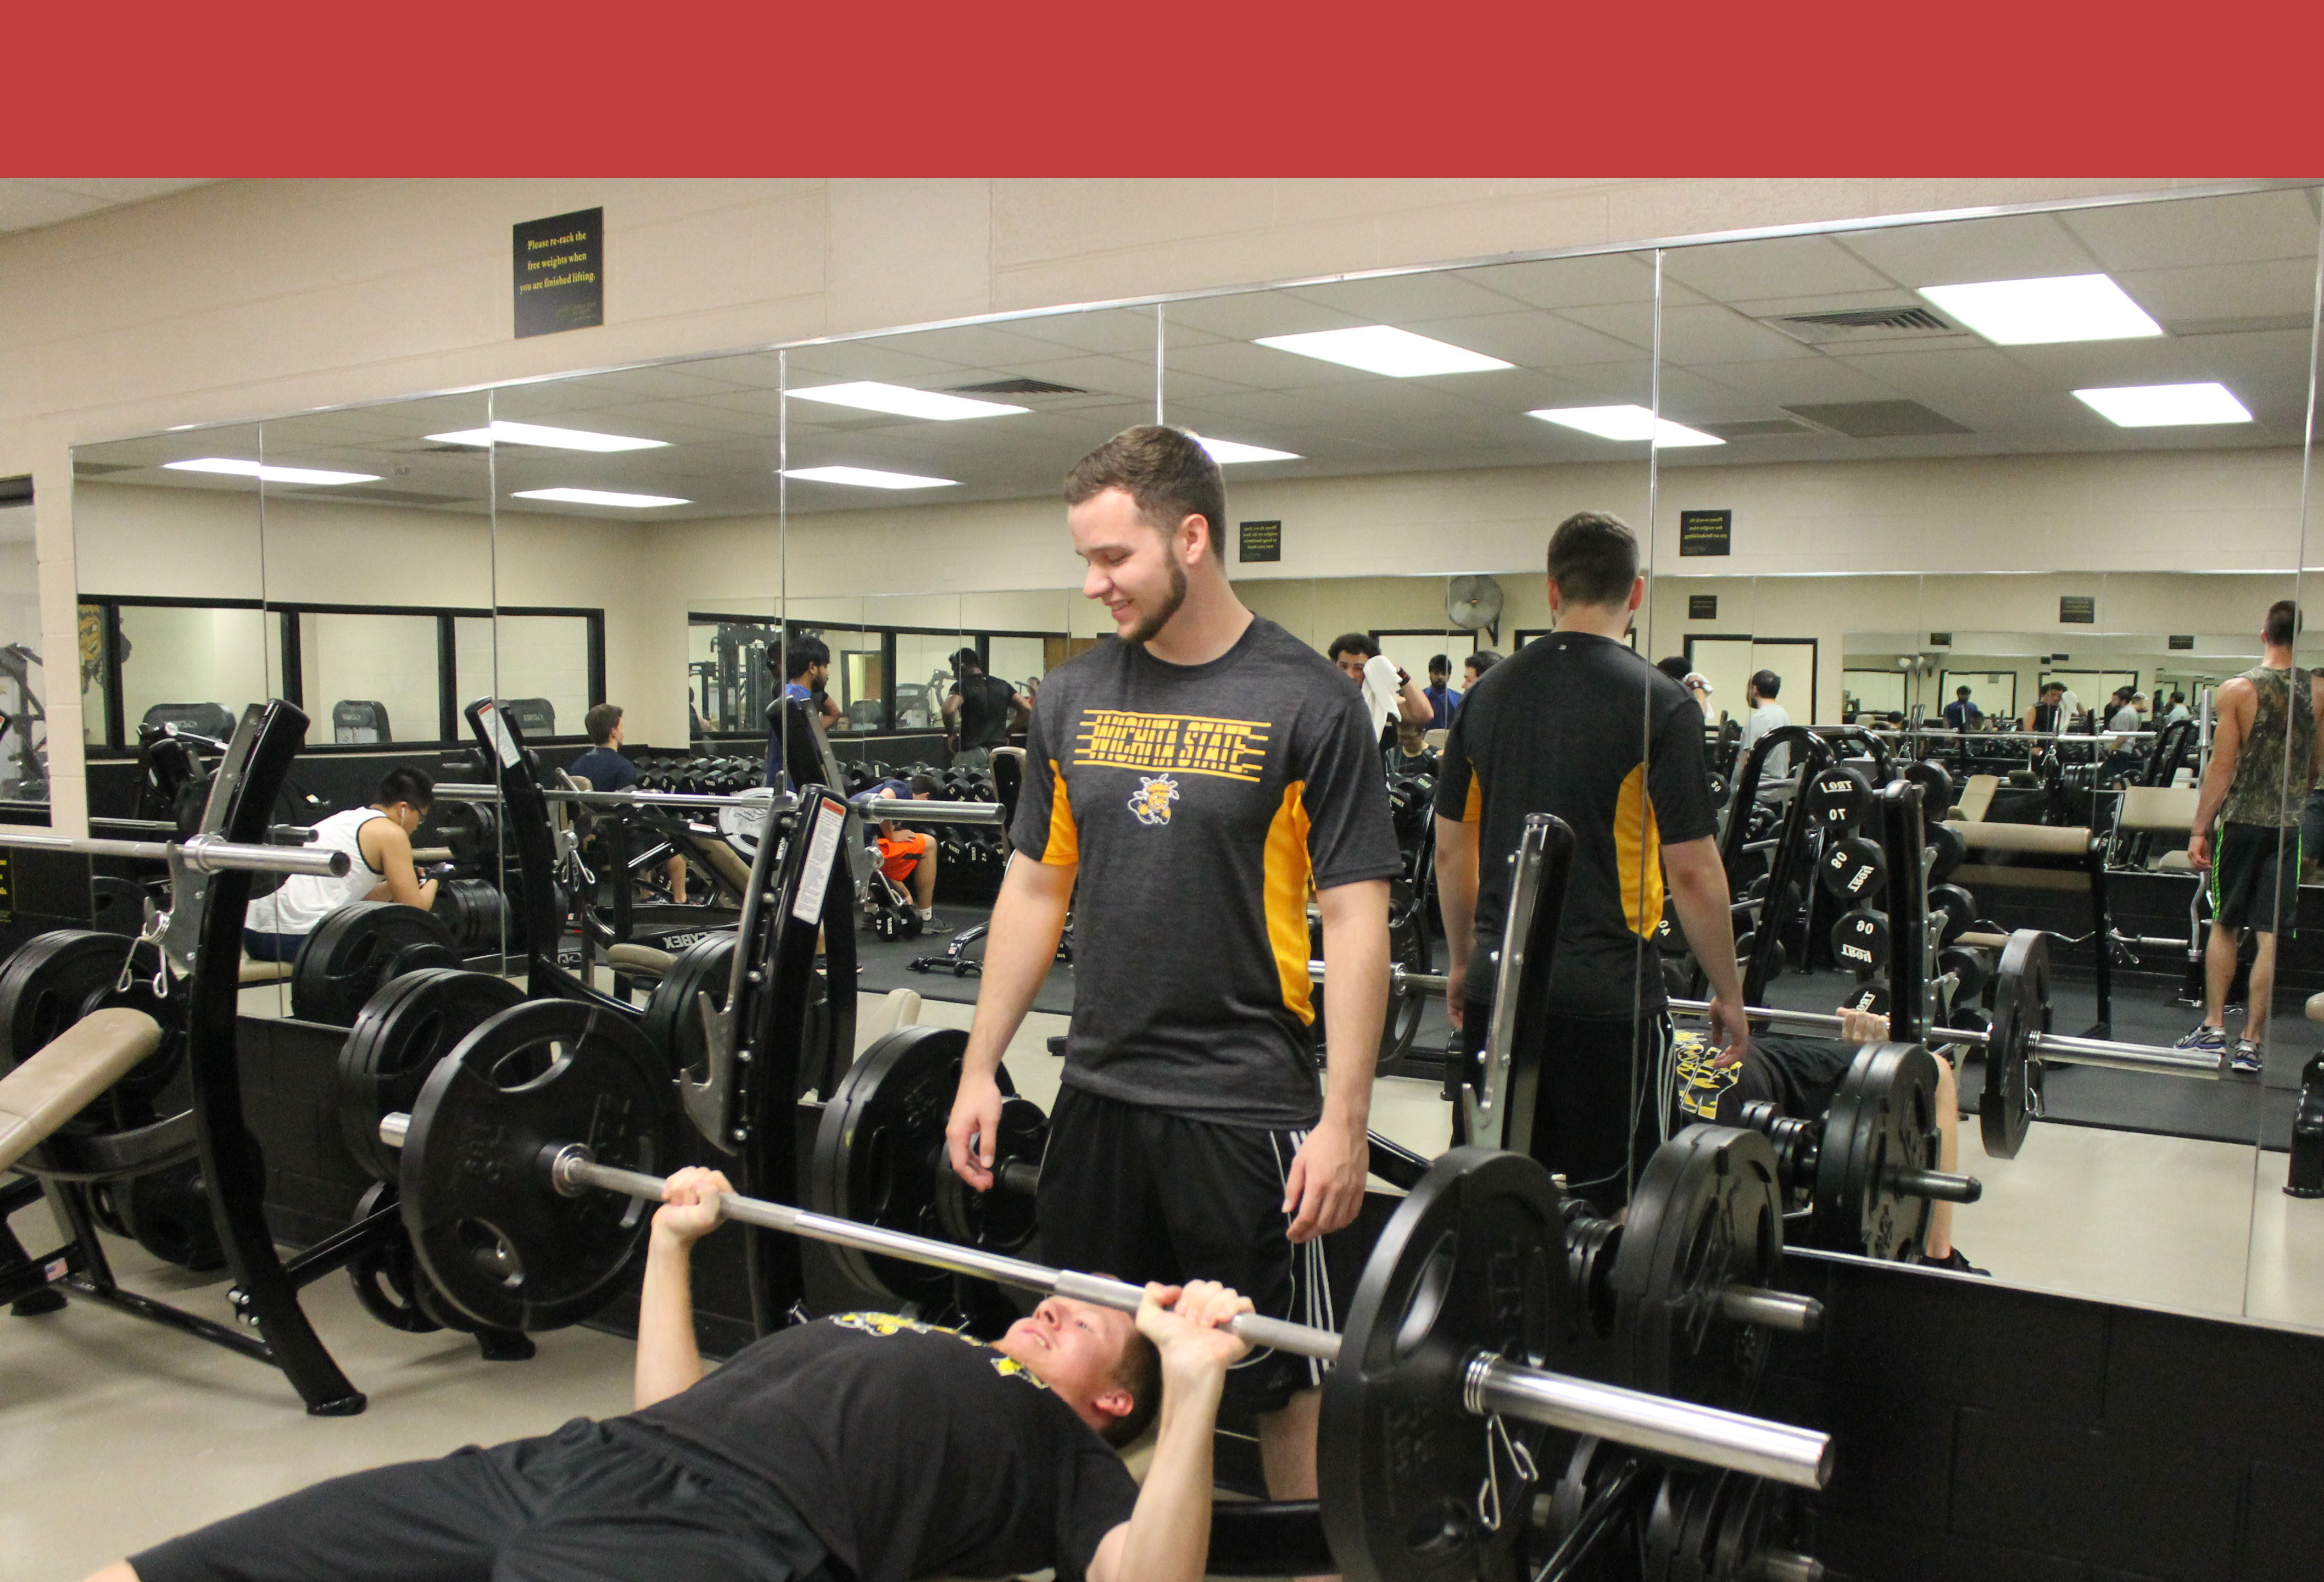 Man doing bench press in the weight room, another man, smiling, is spotting him